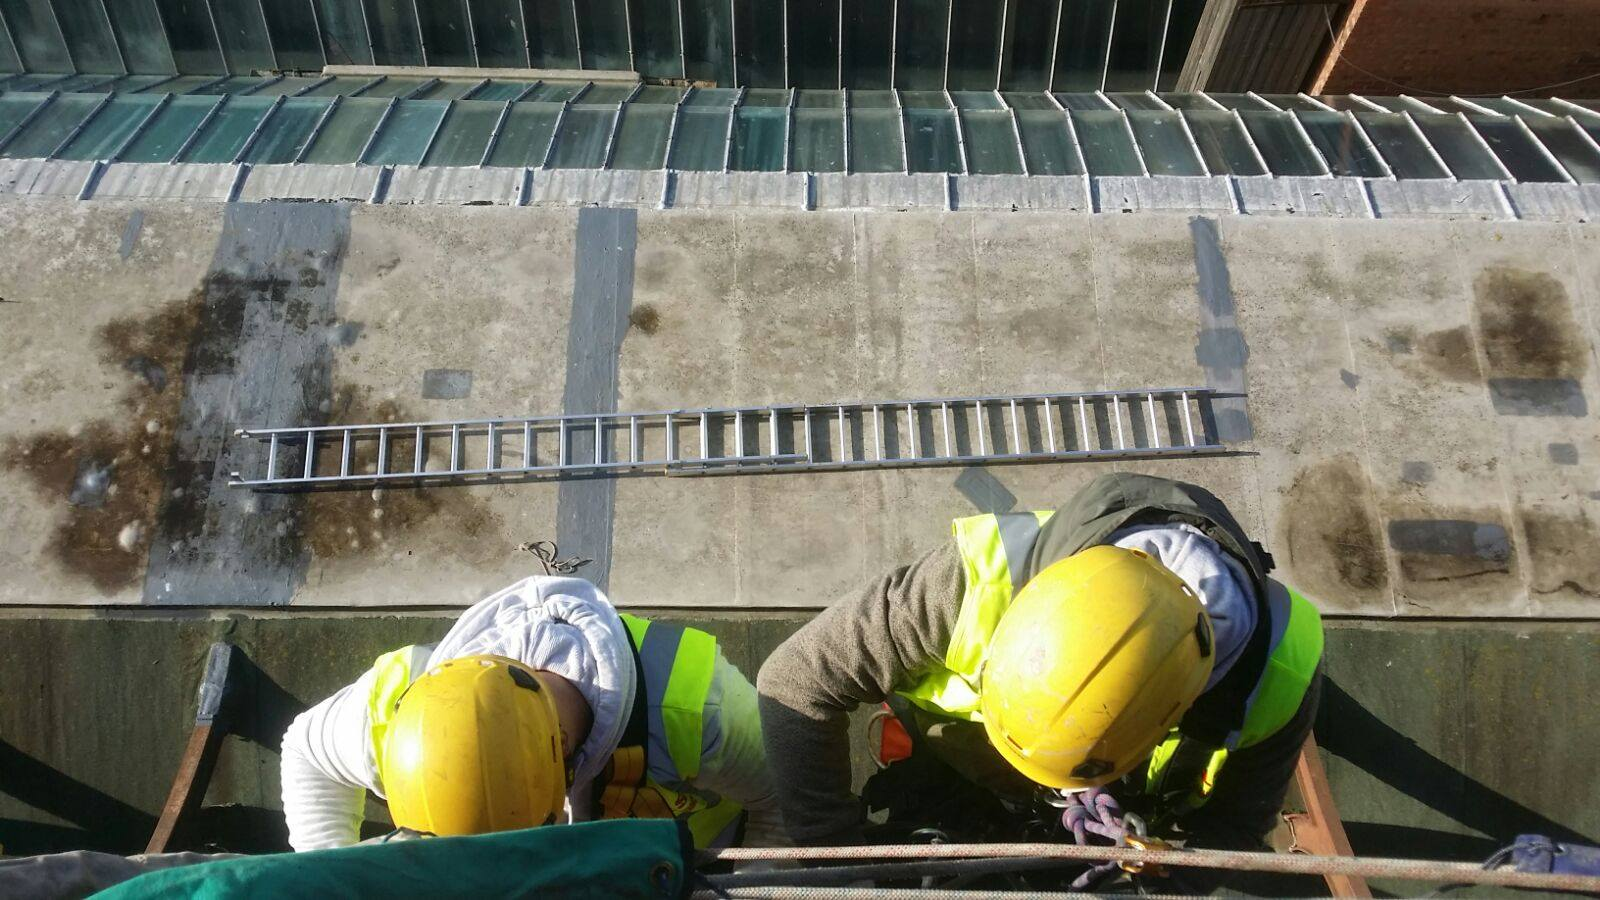 Looking down on two rope access technicians carrying out rope access pointing and high level brick work repair